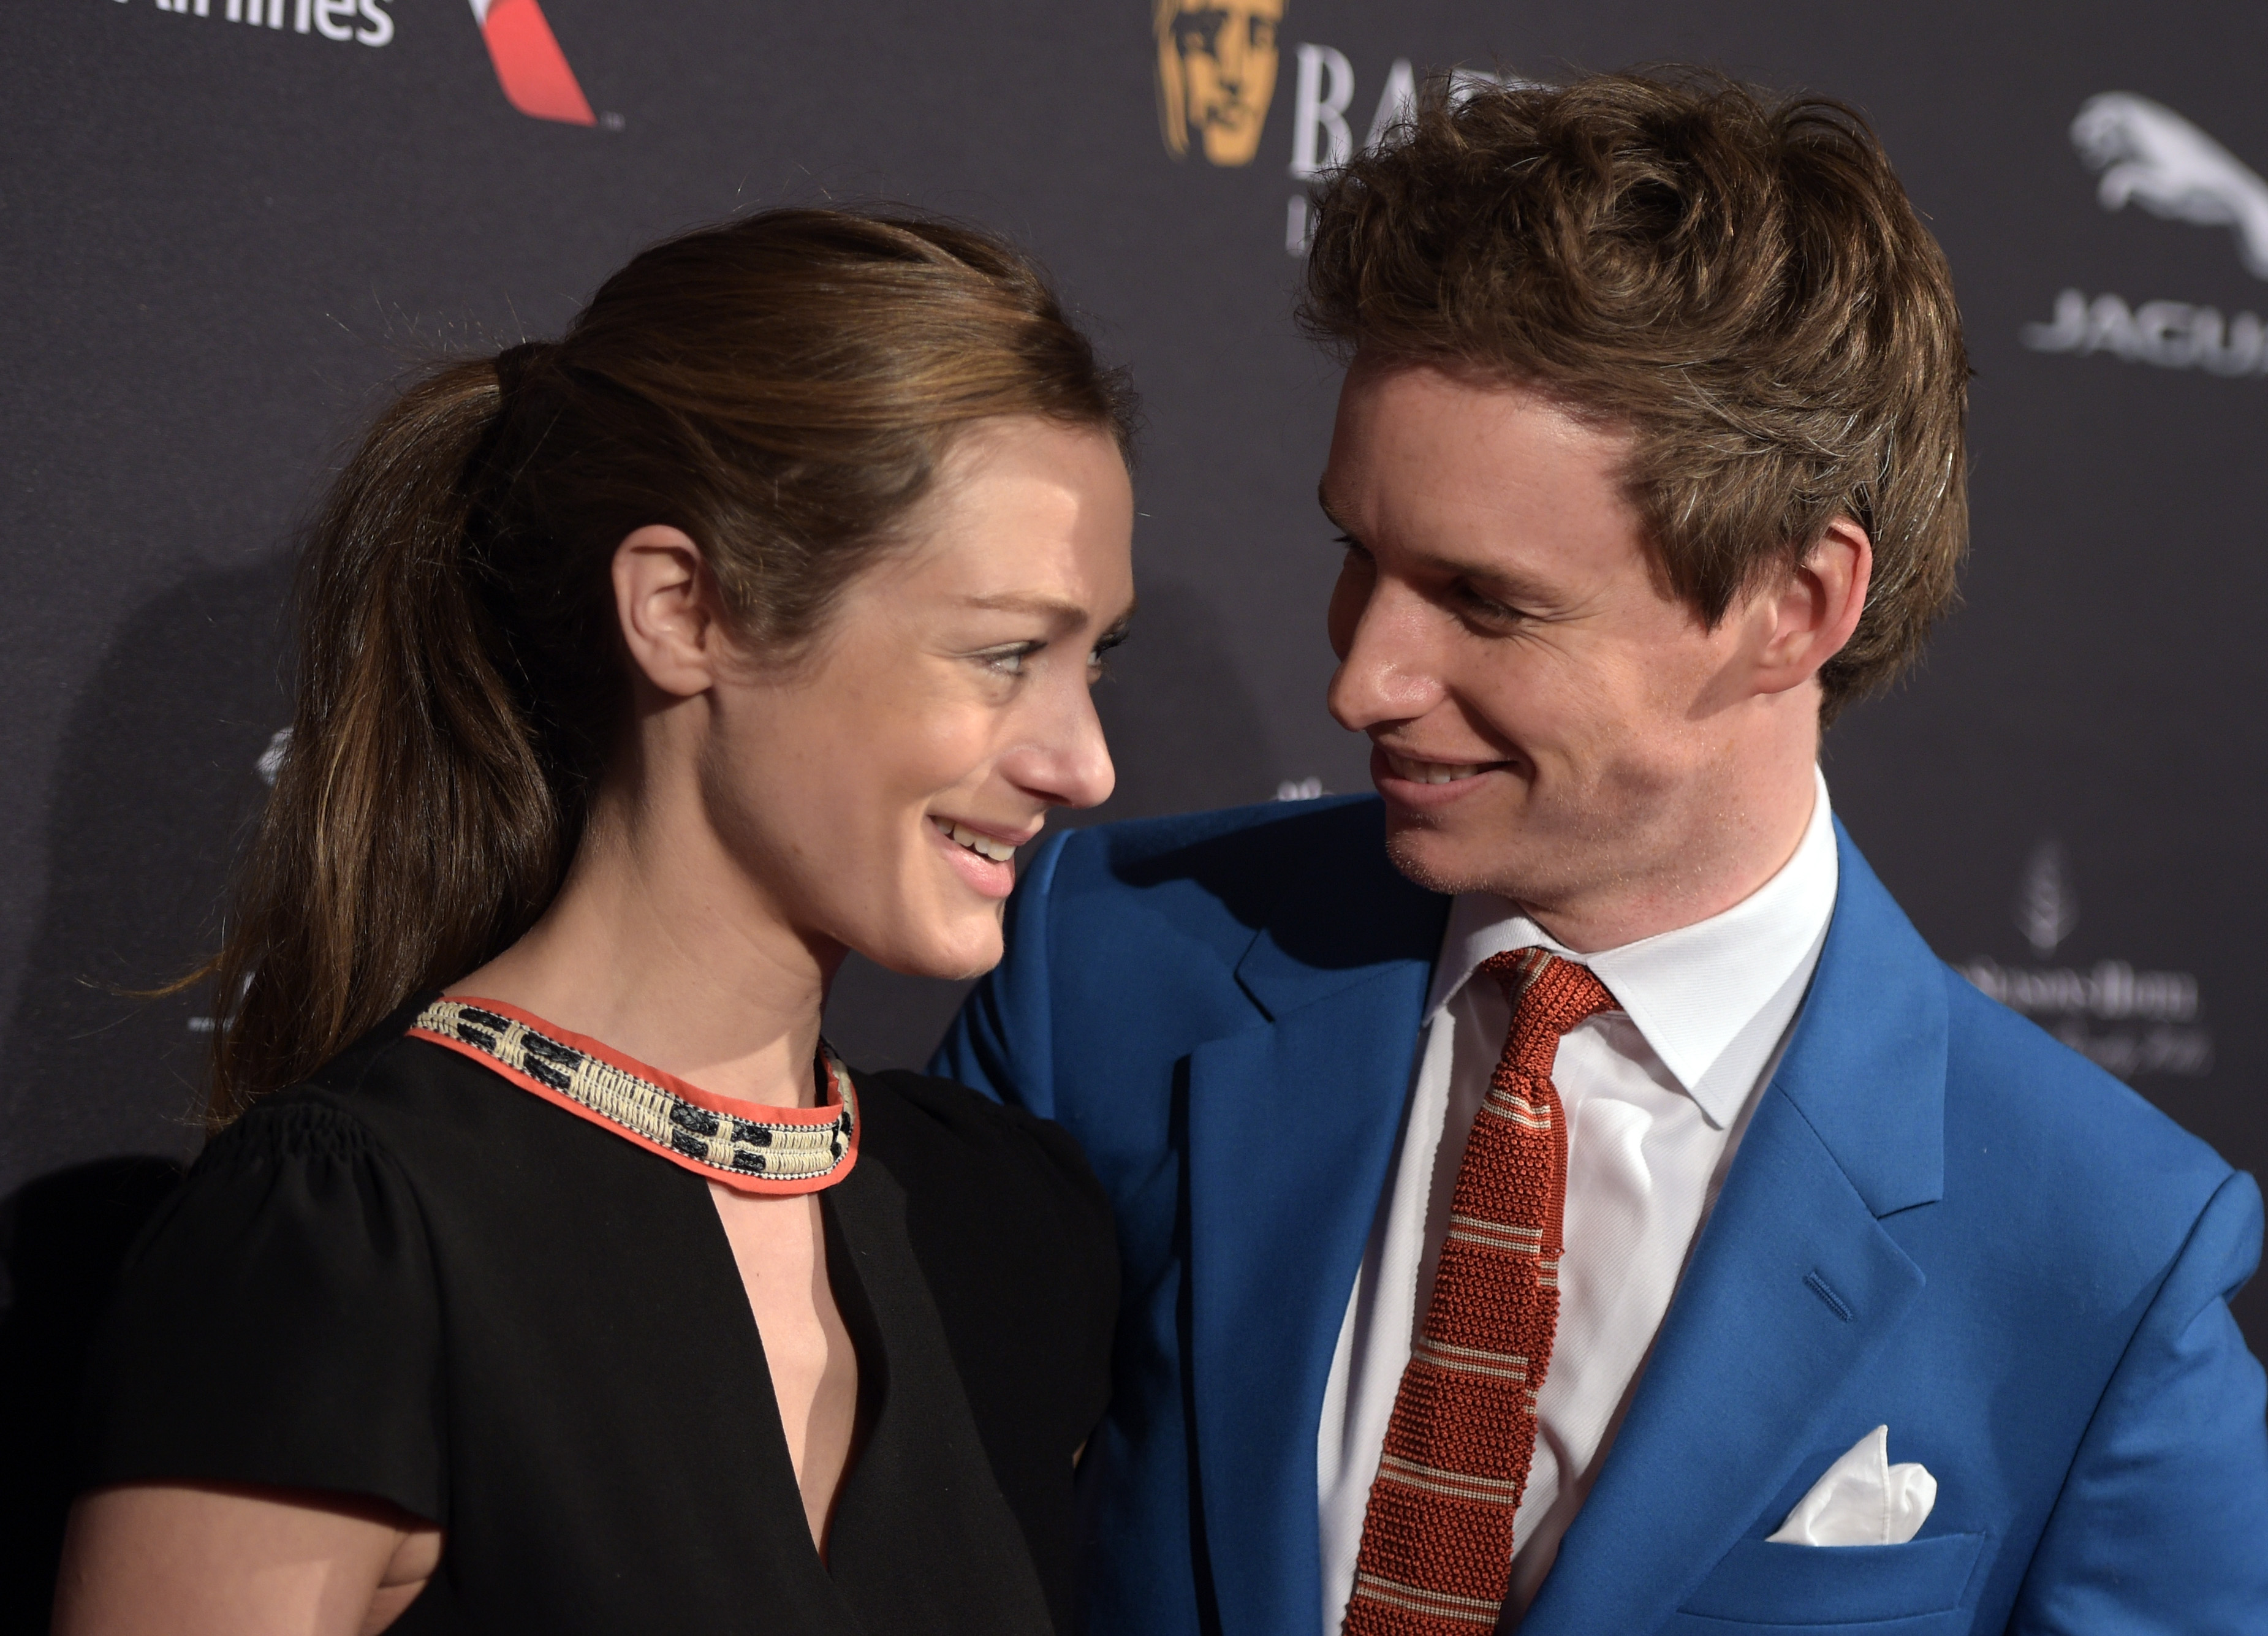 Eddie Redmayne Hannah Bagshawe S Cutest Moments From Subway Kisses To Awards Show Speeches